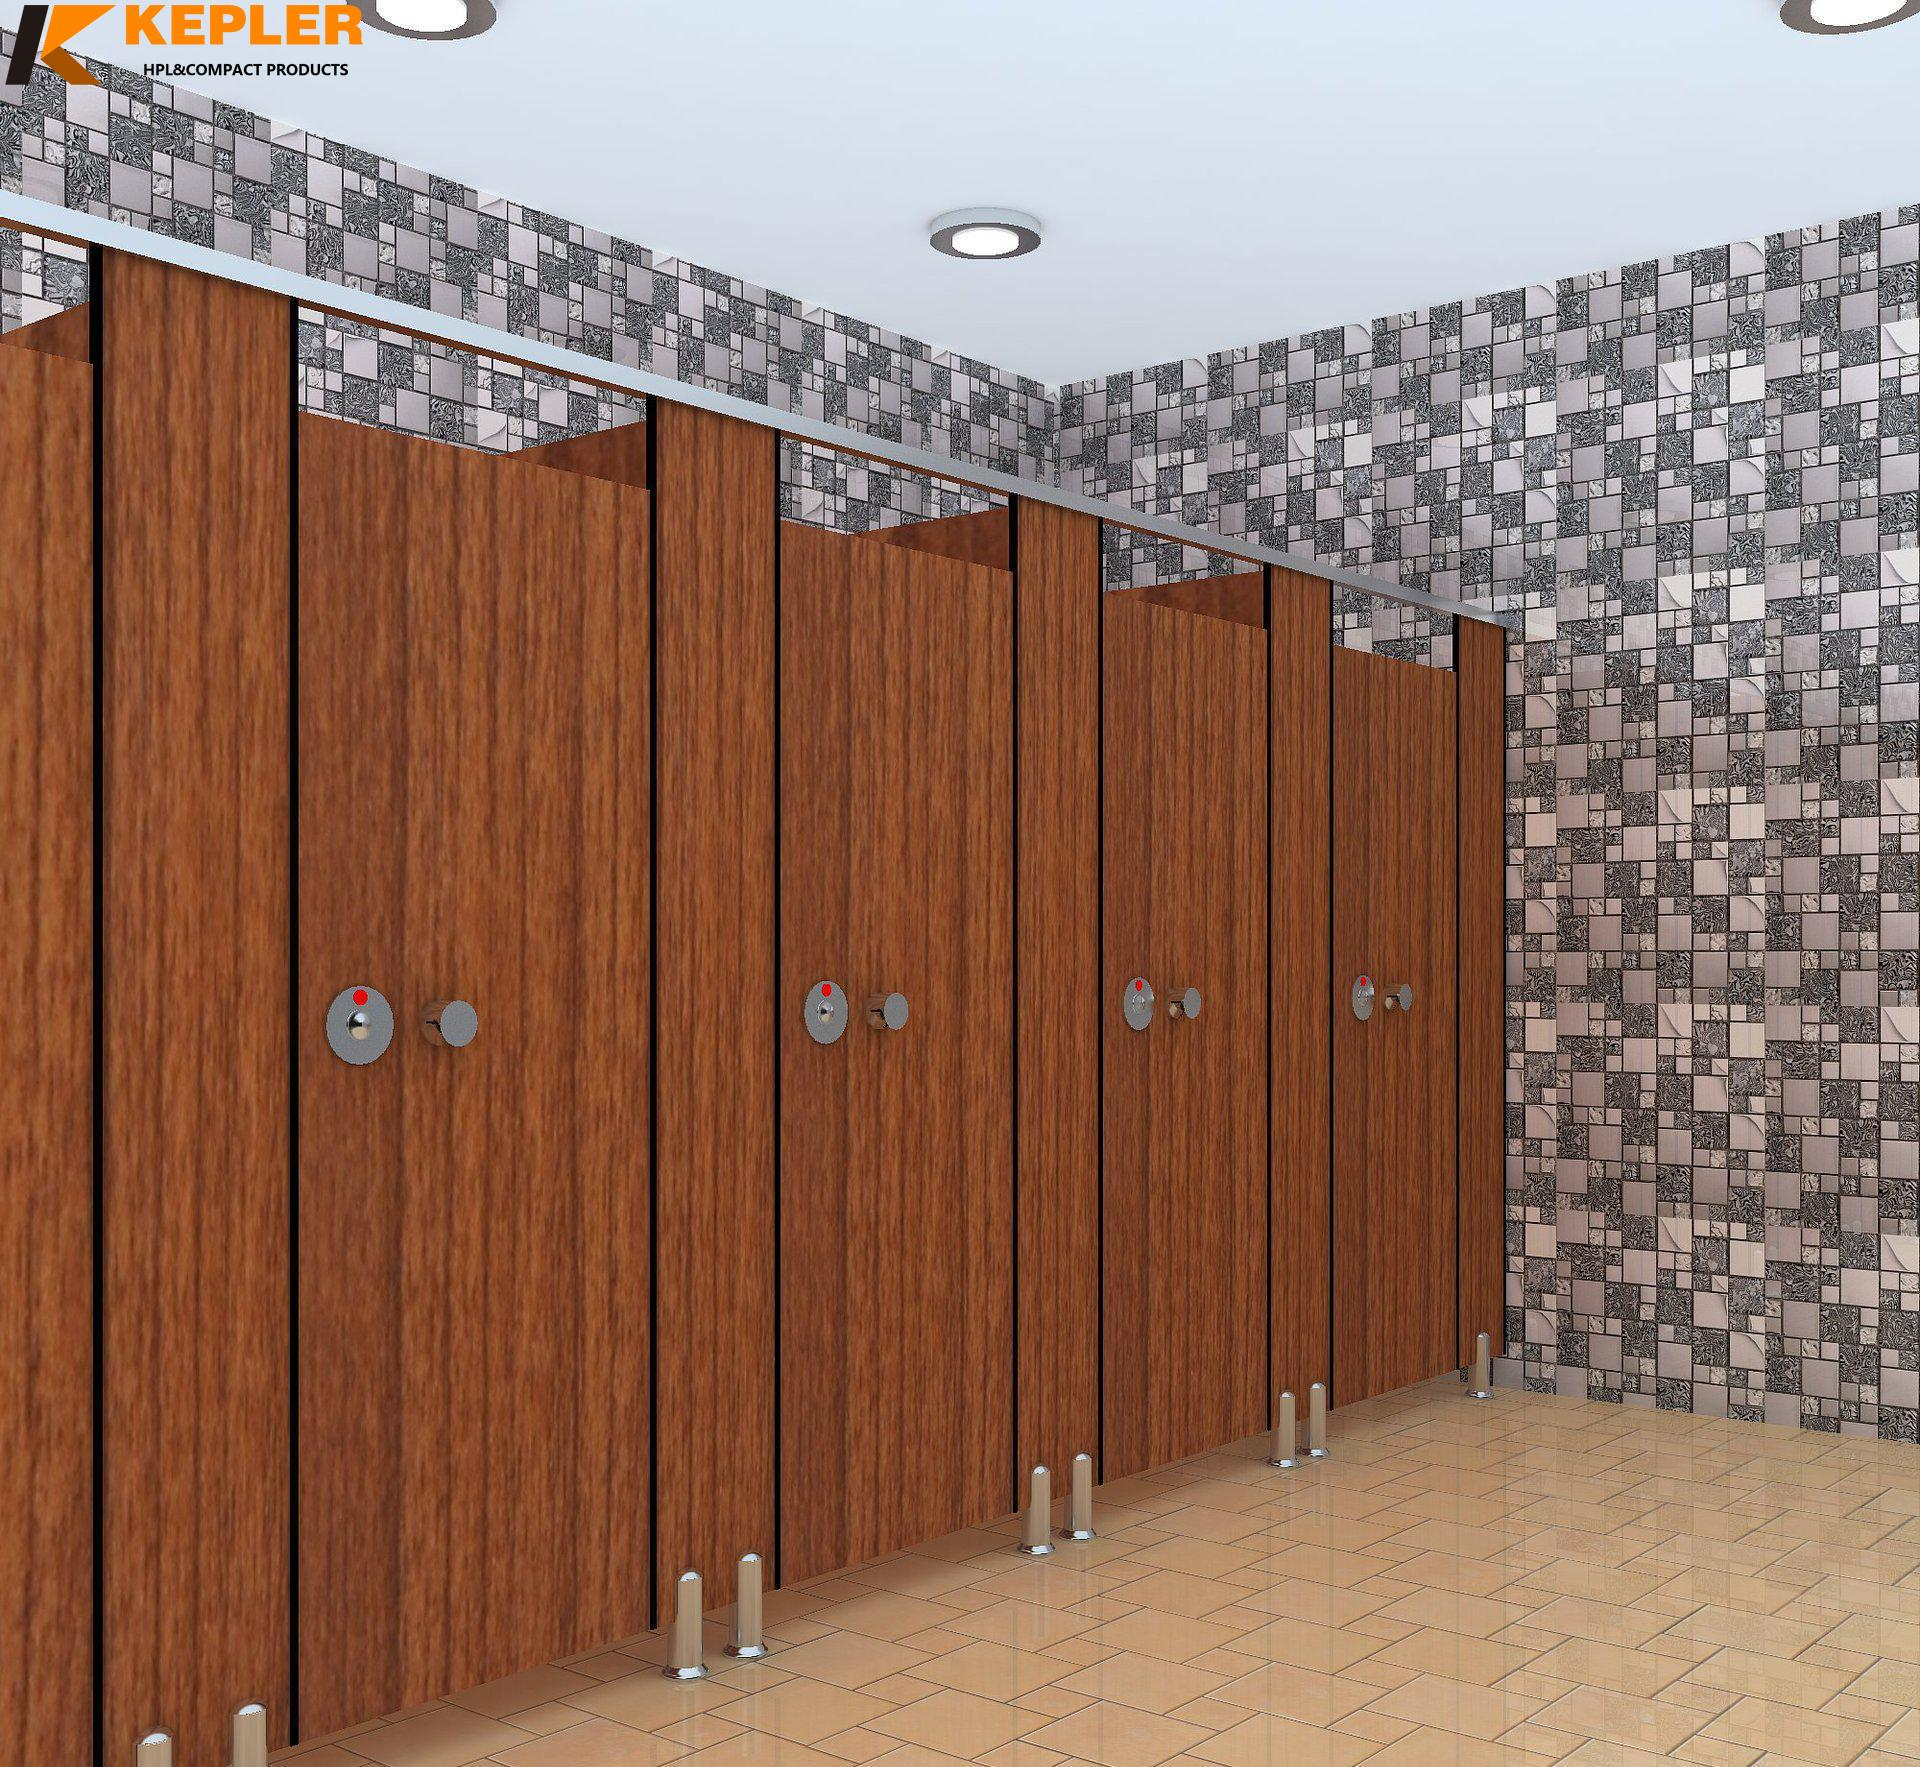 Kepler 12mm phenolic compact laminate hpl toilet cubicle partition panel with Nylon accessories